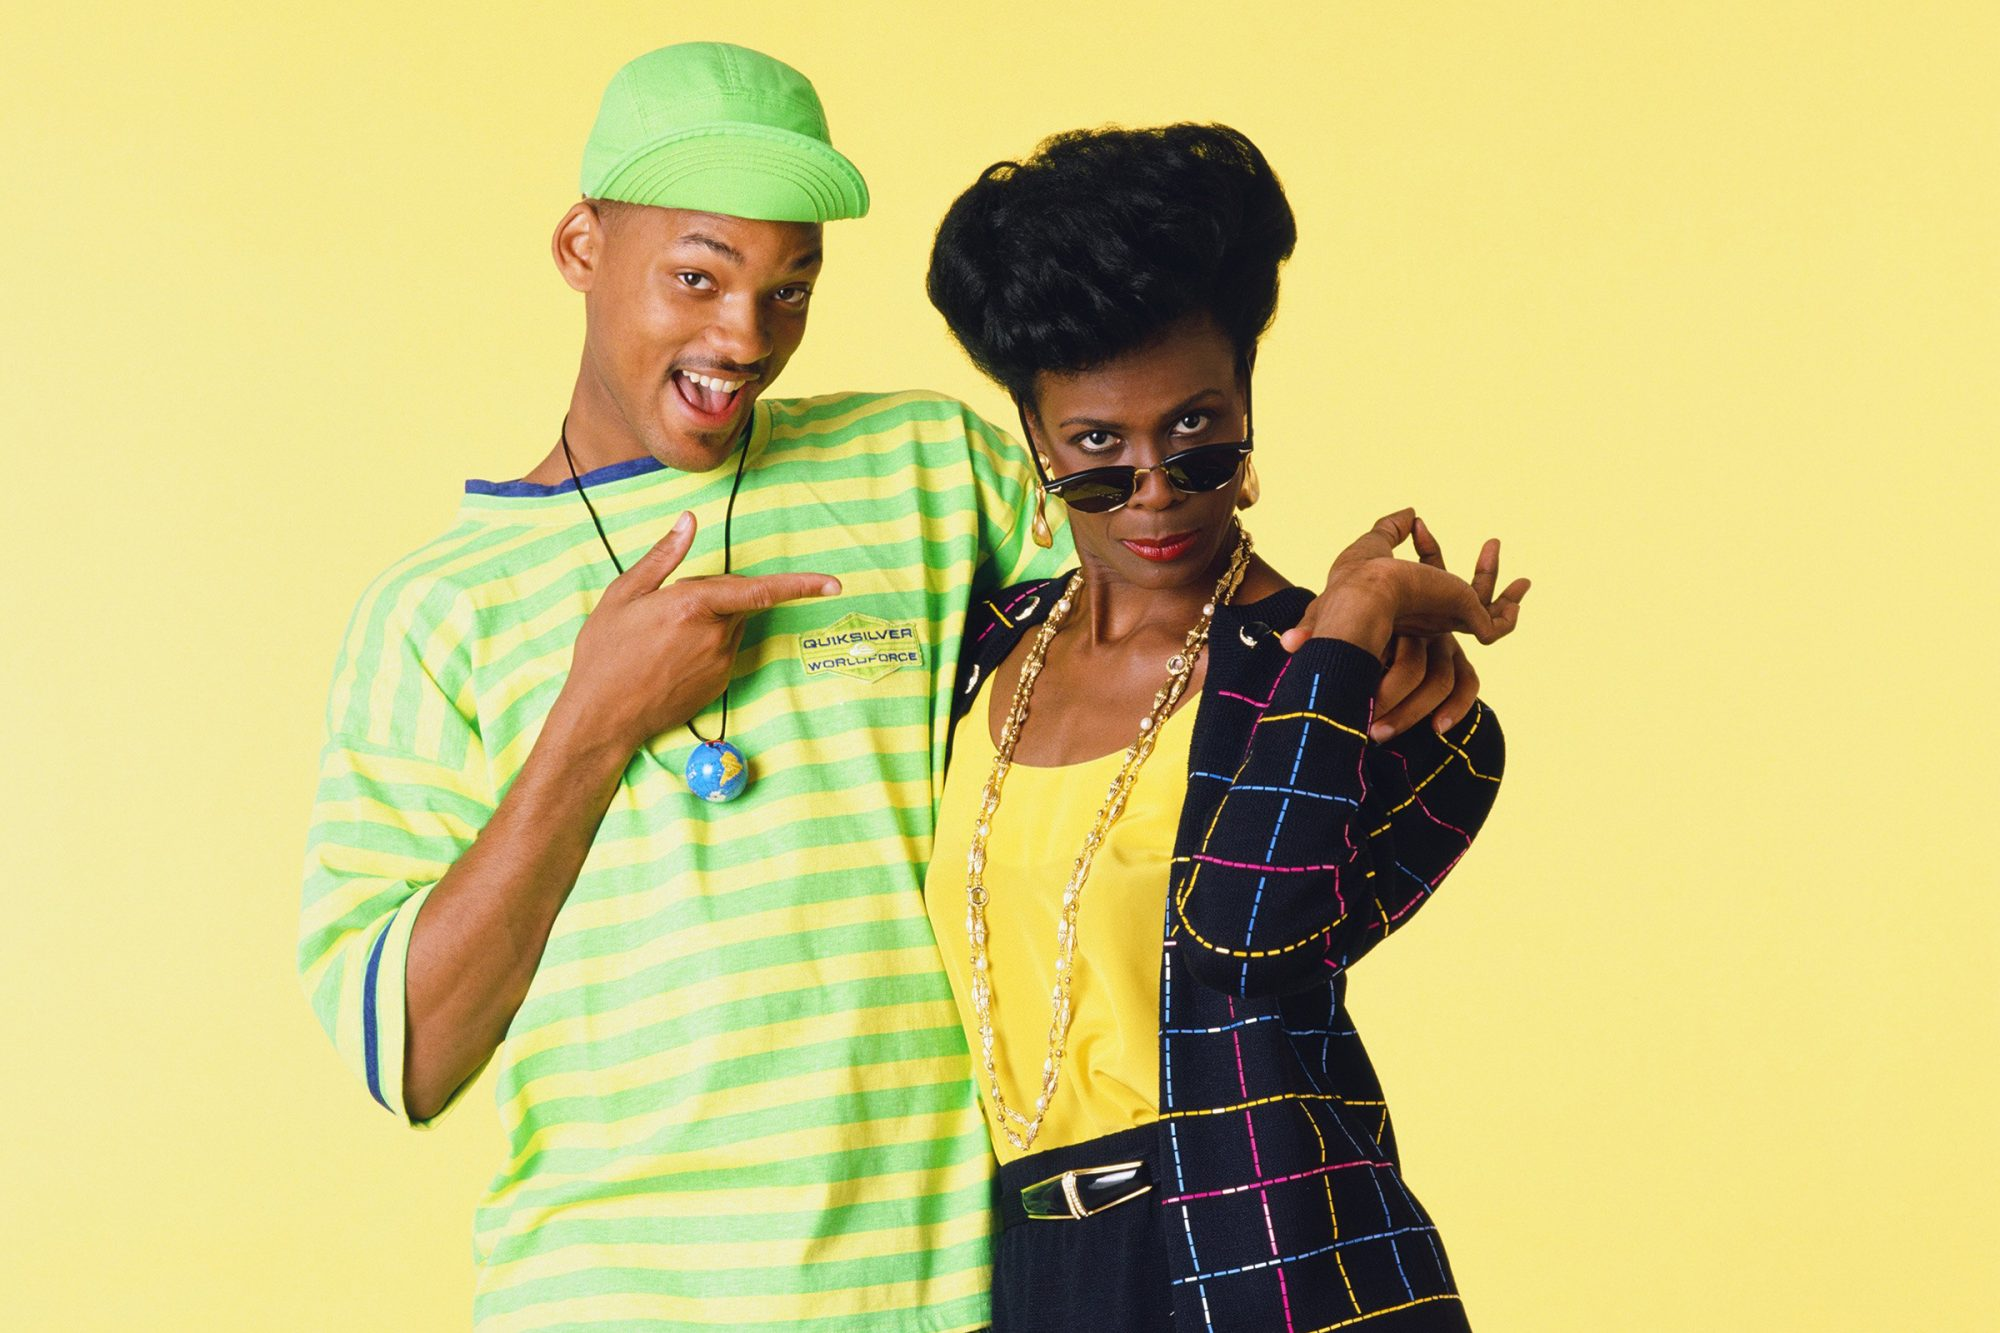 Will Smith, Jane Hubert The Fresh Prince of Bel-Air